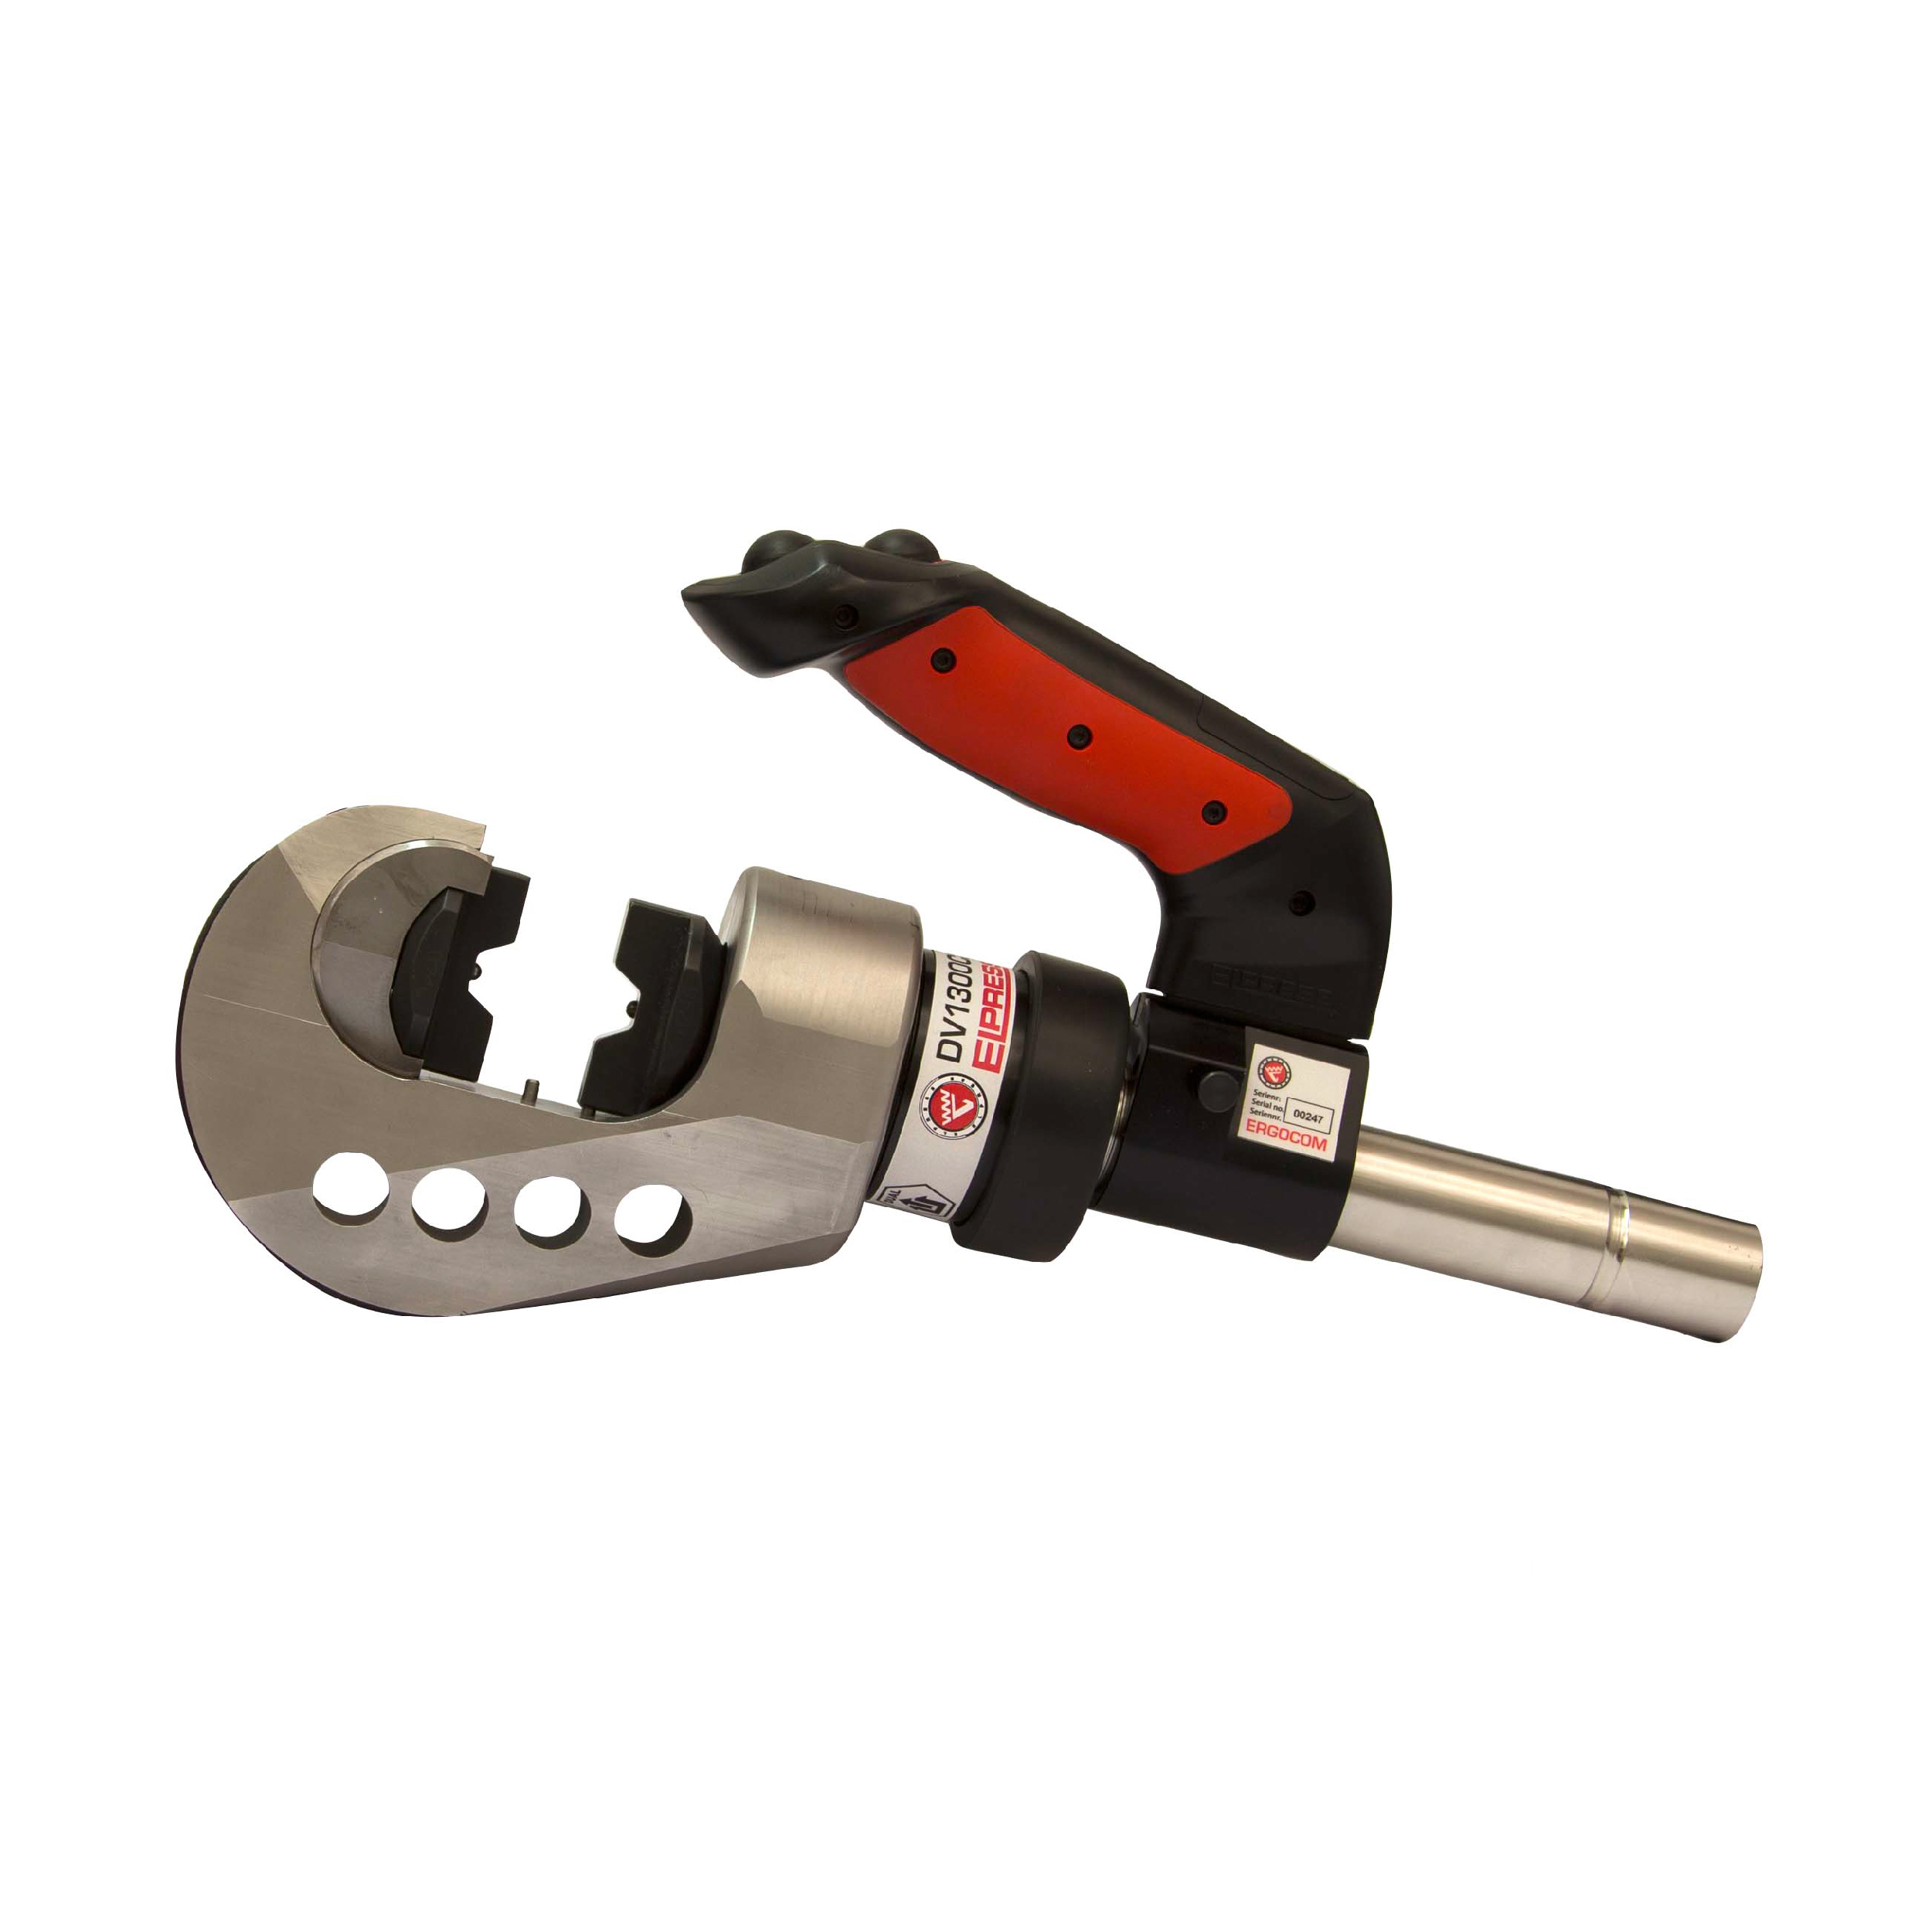 Elpress Crimp Tool DV1300C2 C-fork type Head for Cu (Range 10-400mm²) and C-sleeves up to 120 mm²